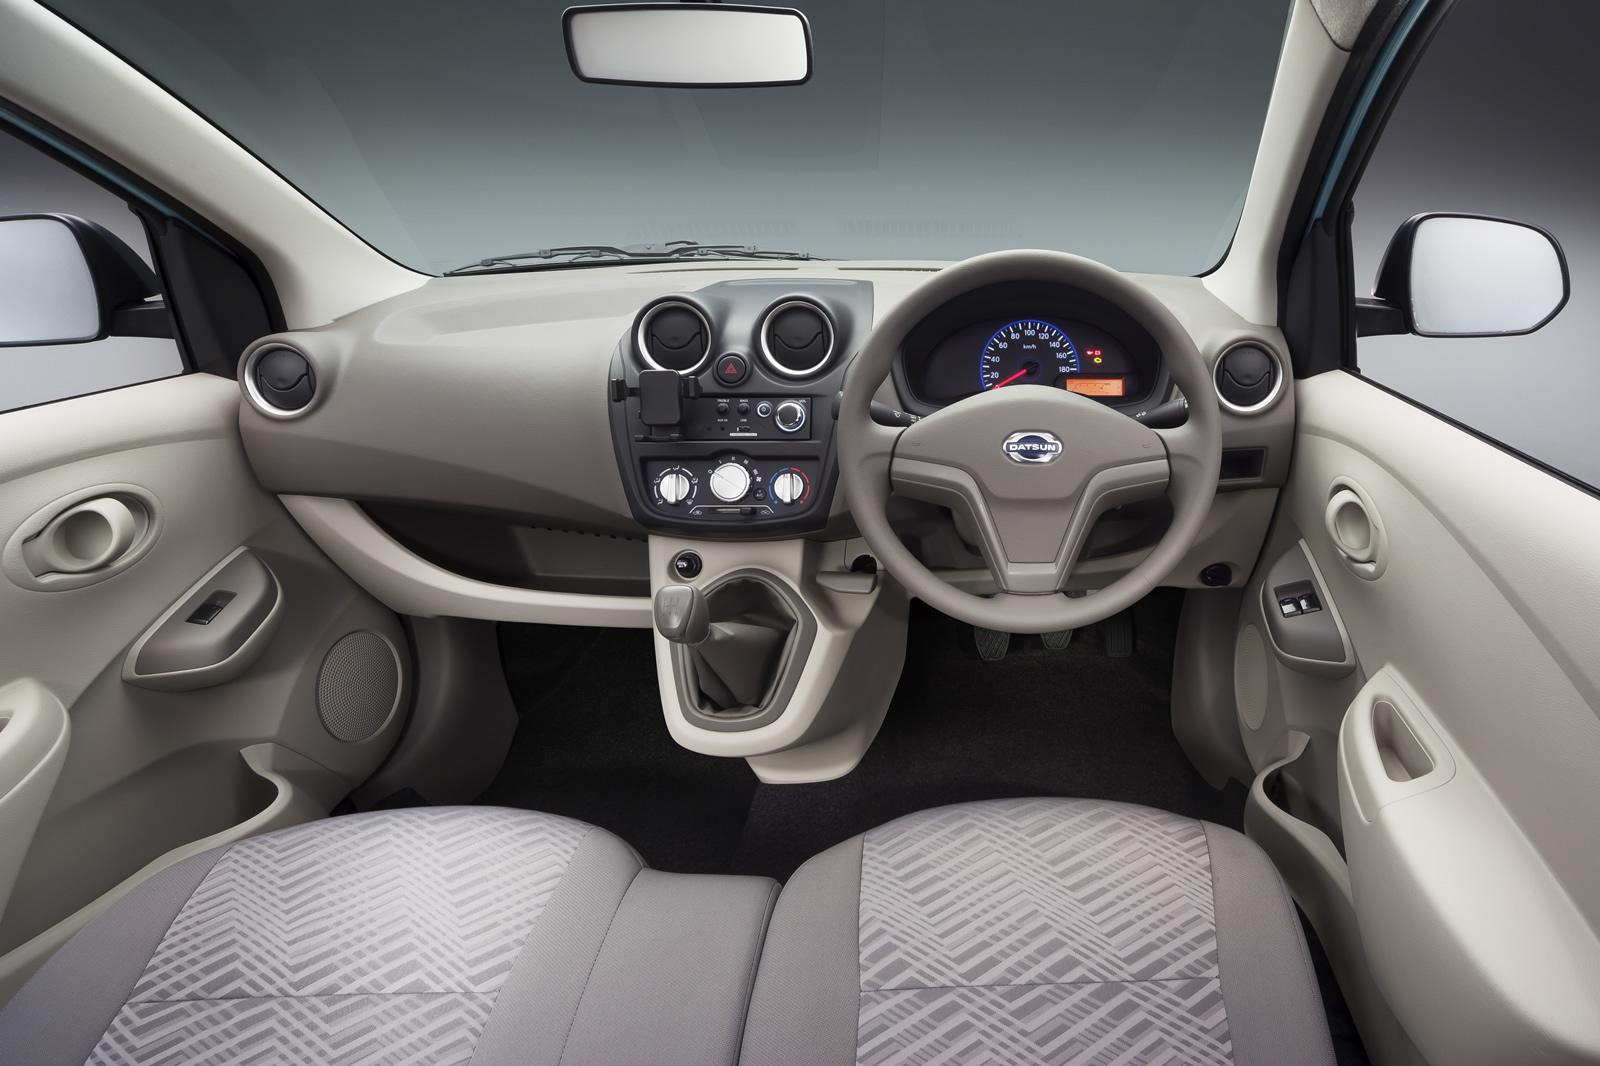 Datsun Go gets dashboard mounted gear lever and bench seat